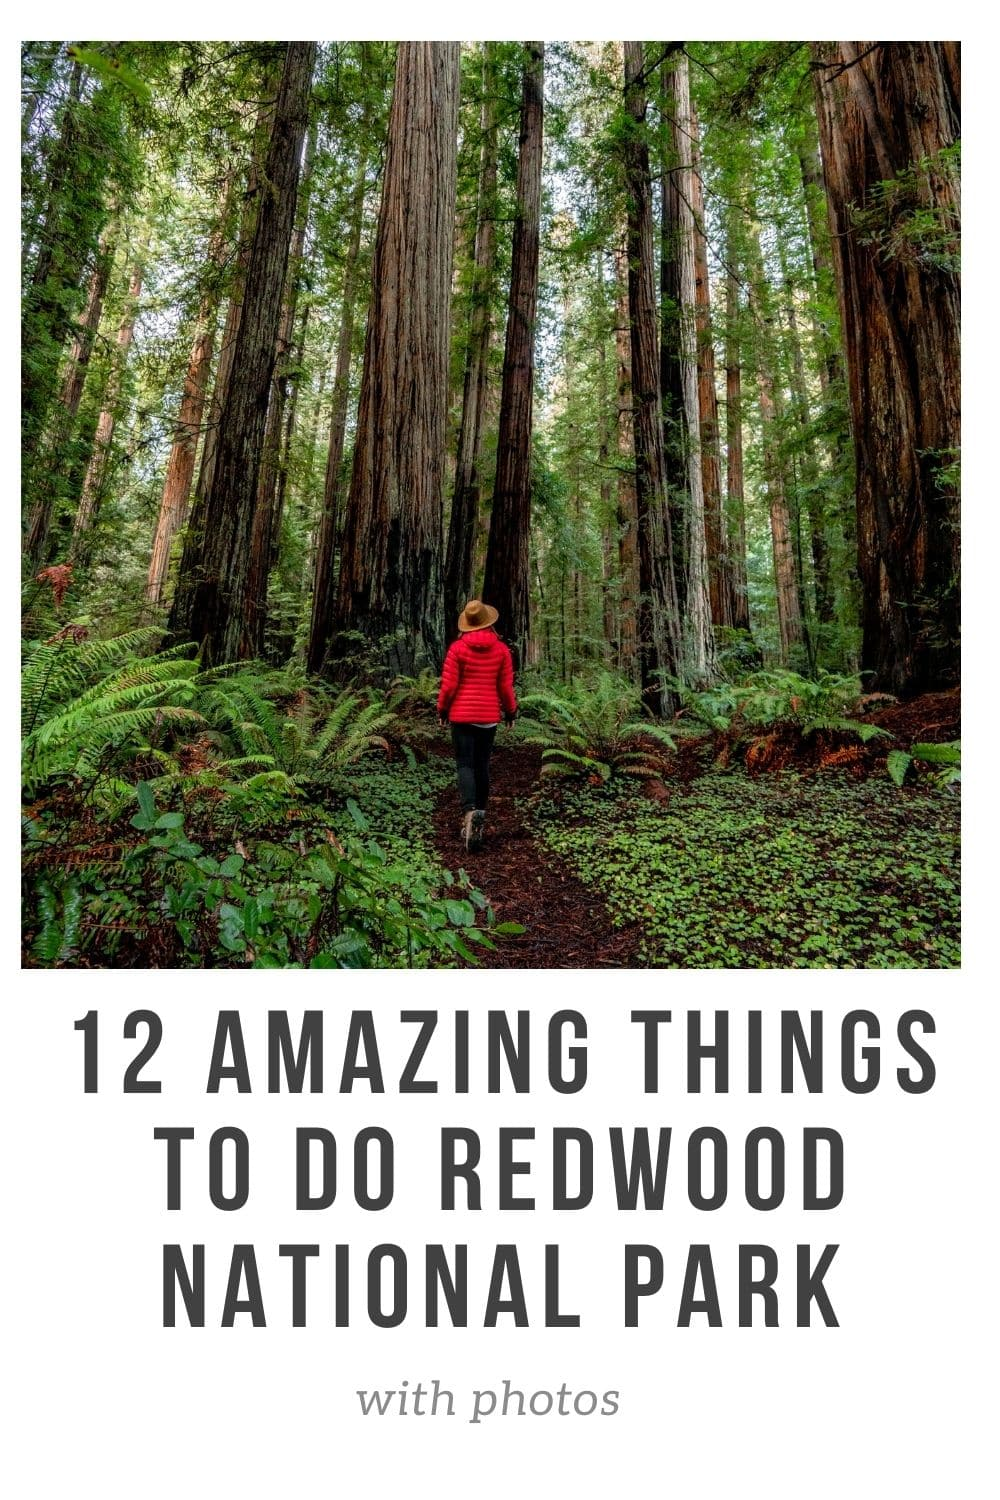 12 amazing things to do redwood national park